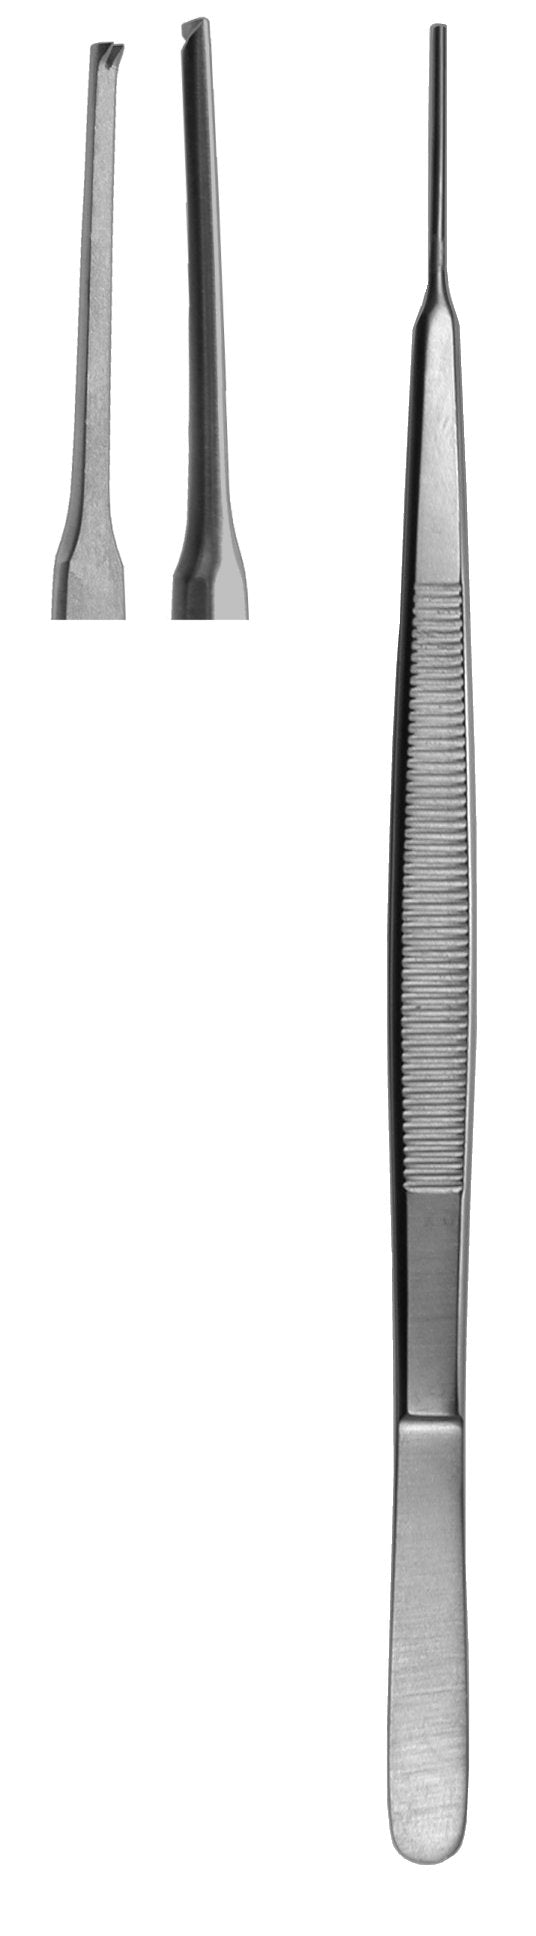 Tissue Forceps, Gerald Straight 1 X 2 Teeth 18cm  (Z-4772)